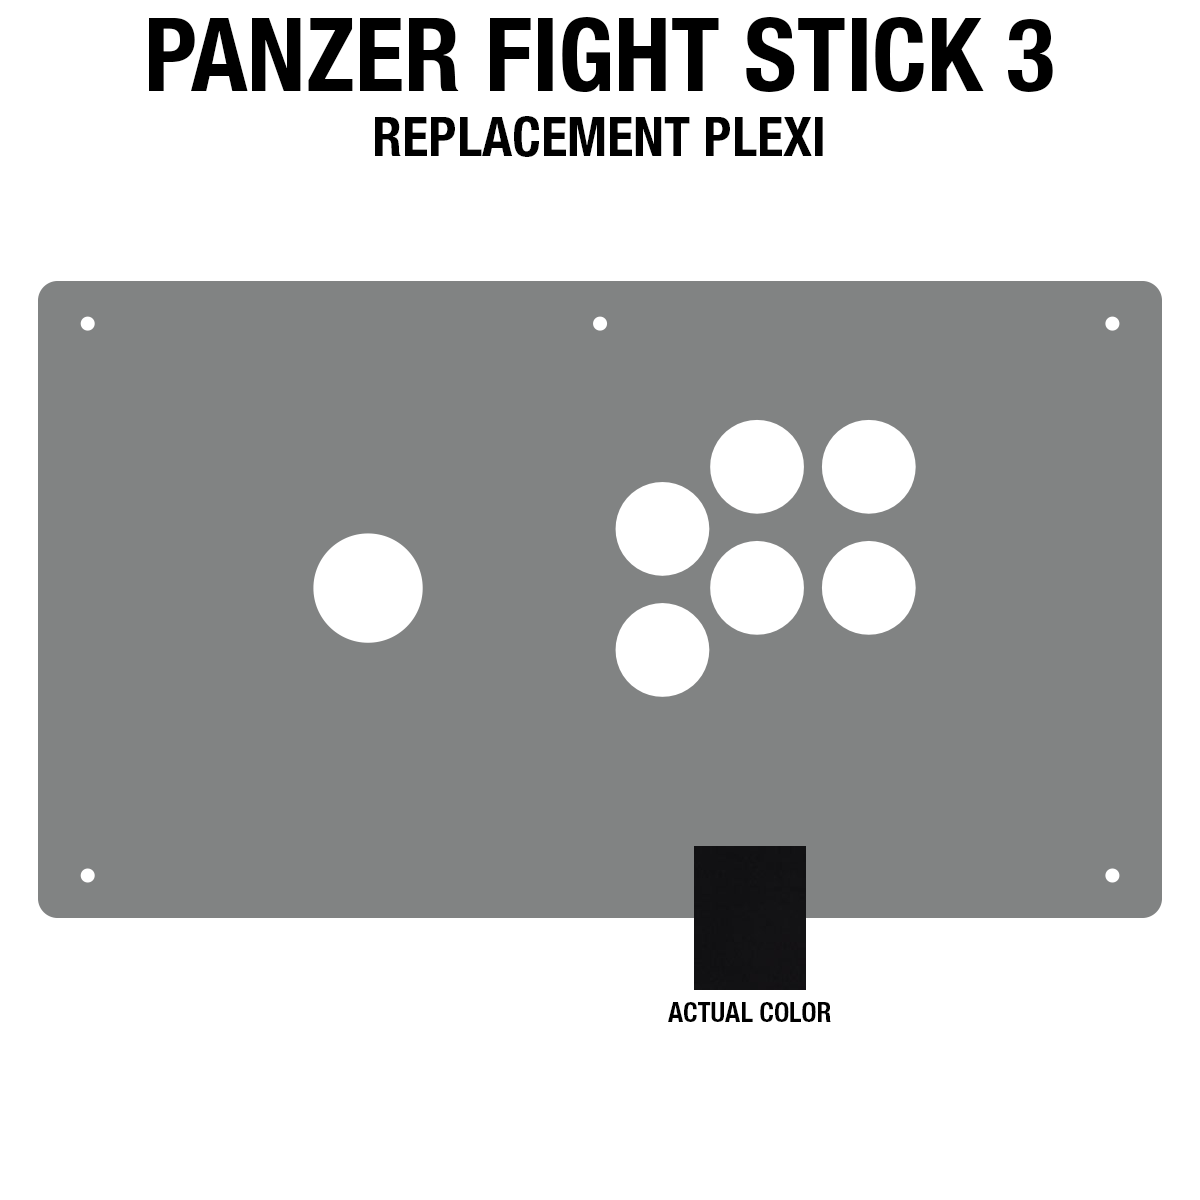 Panzer Fight Stick 3 [KOREAN EDITION] Plexi - Black Gloss (6 Buttons)